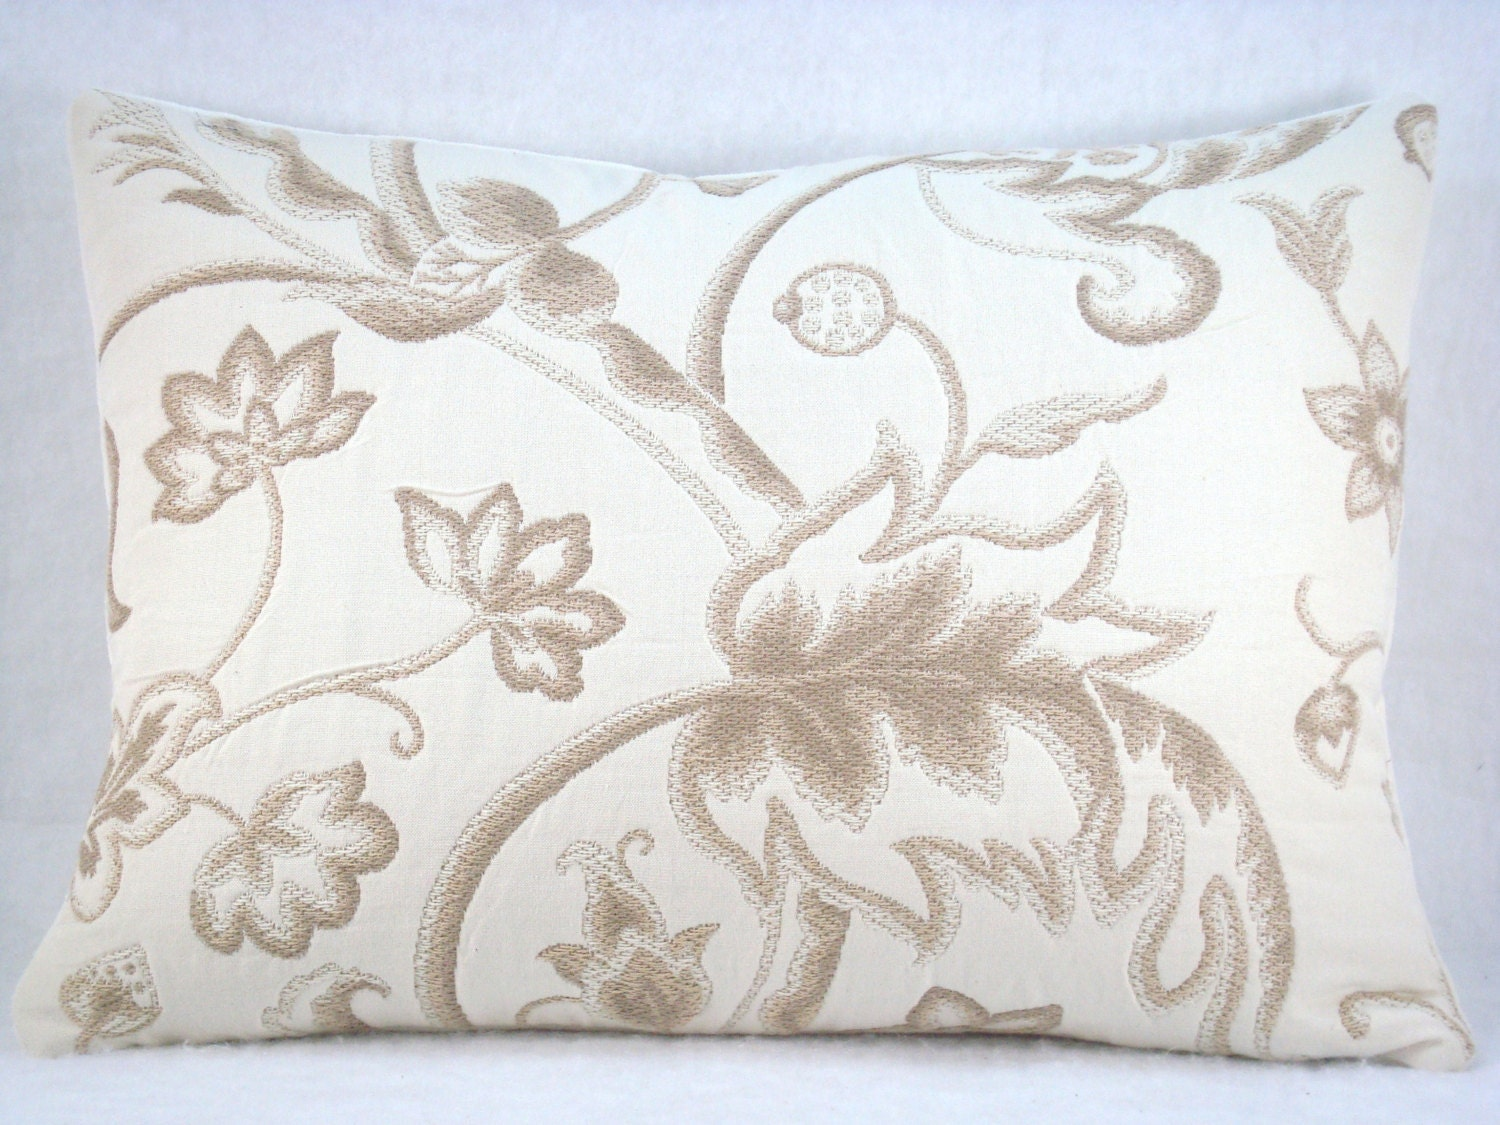 Embroidery Cream Decorative Pillows : Embroidered Cream and Taupe Decorative Accent Lumbar Pillow